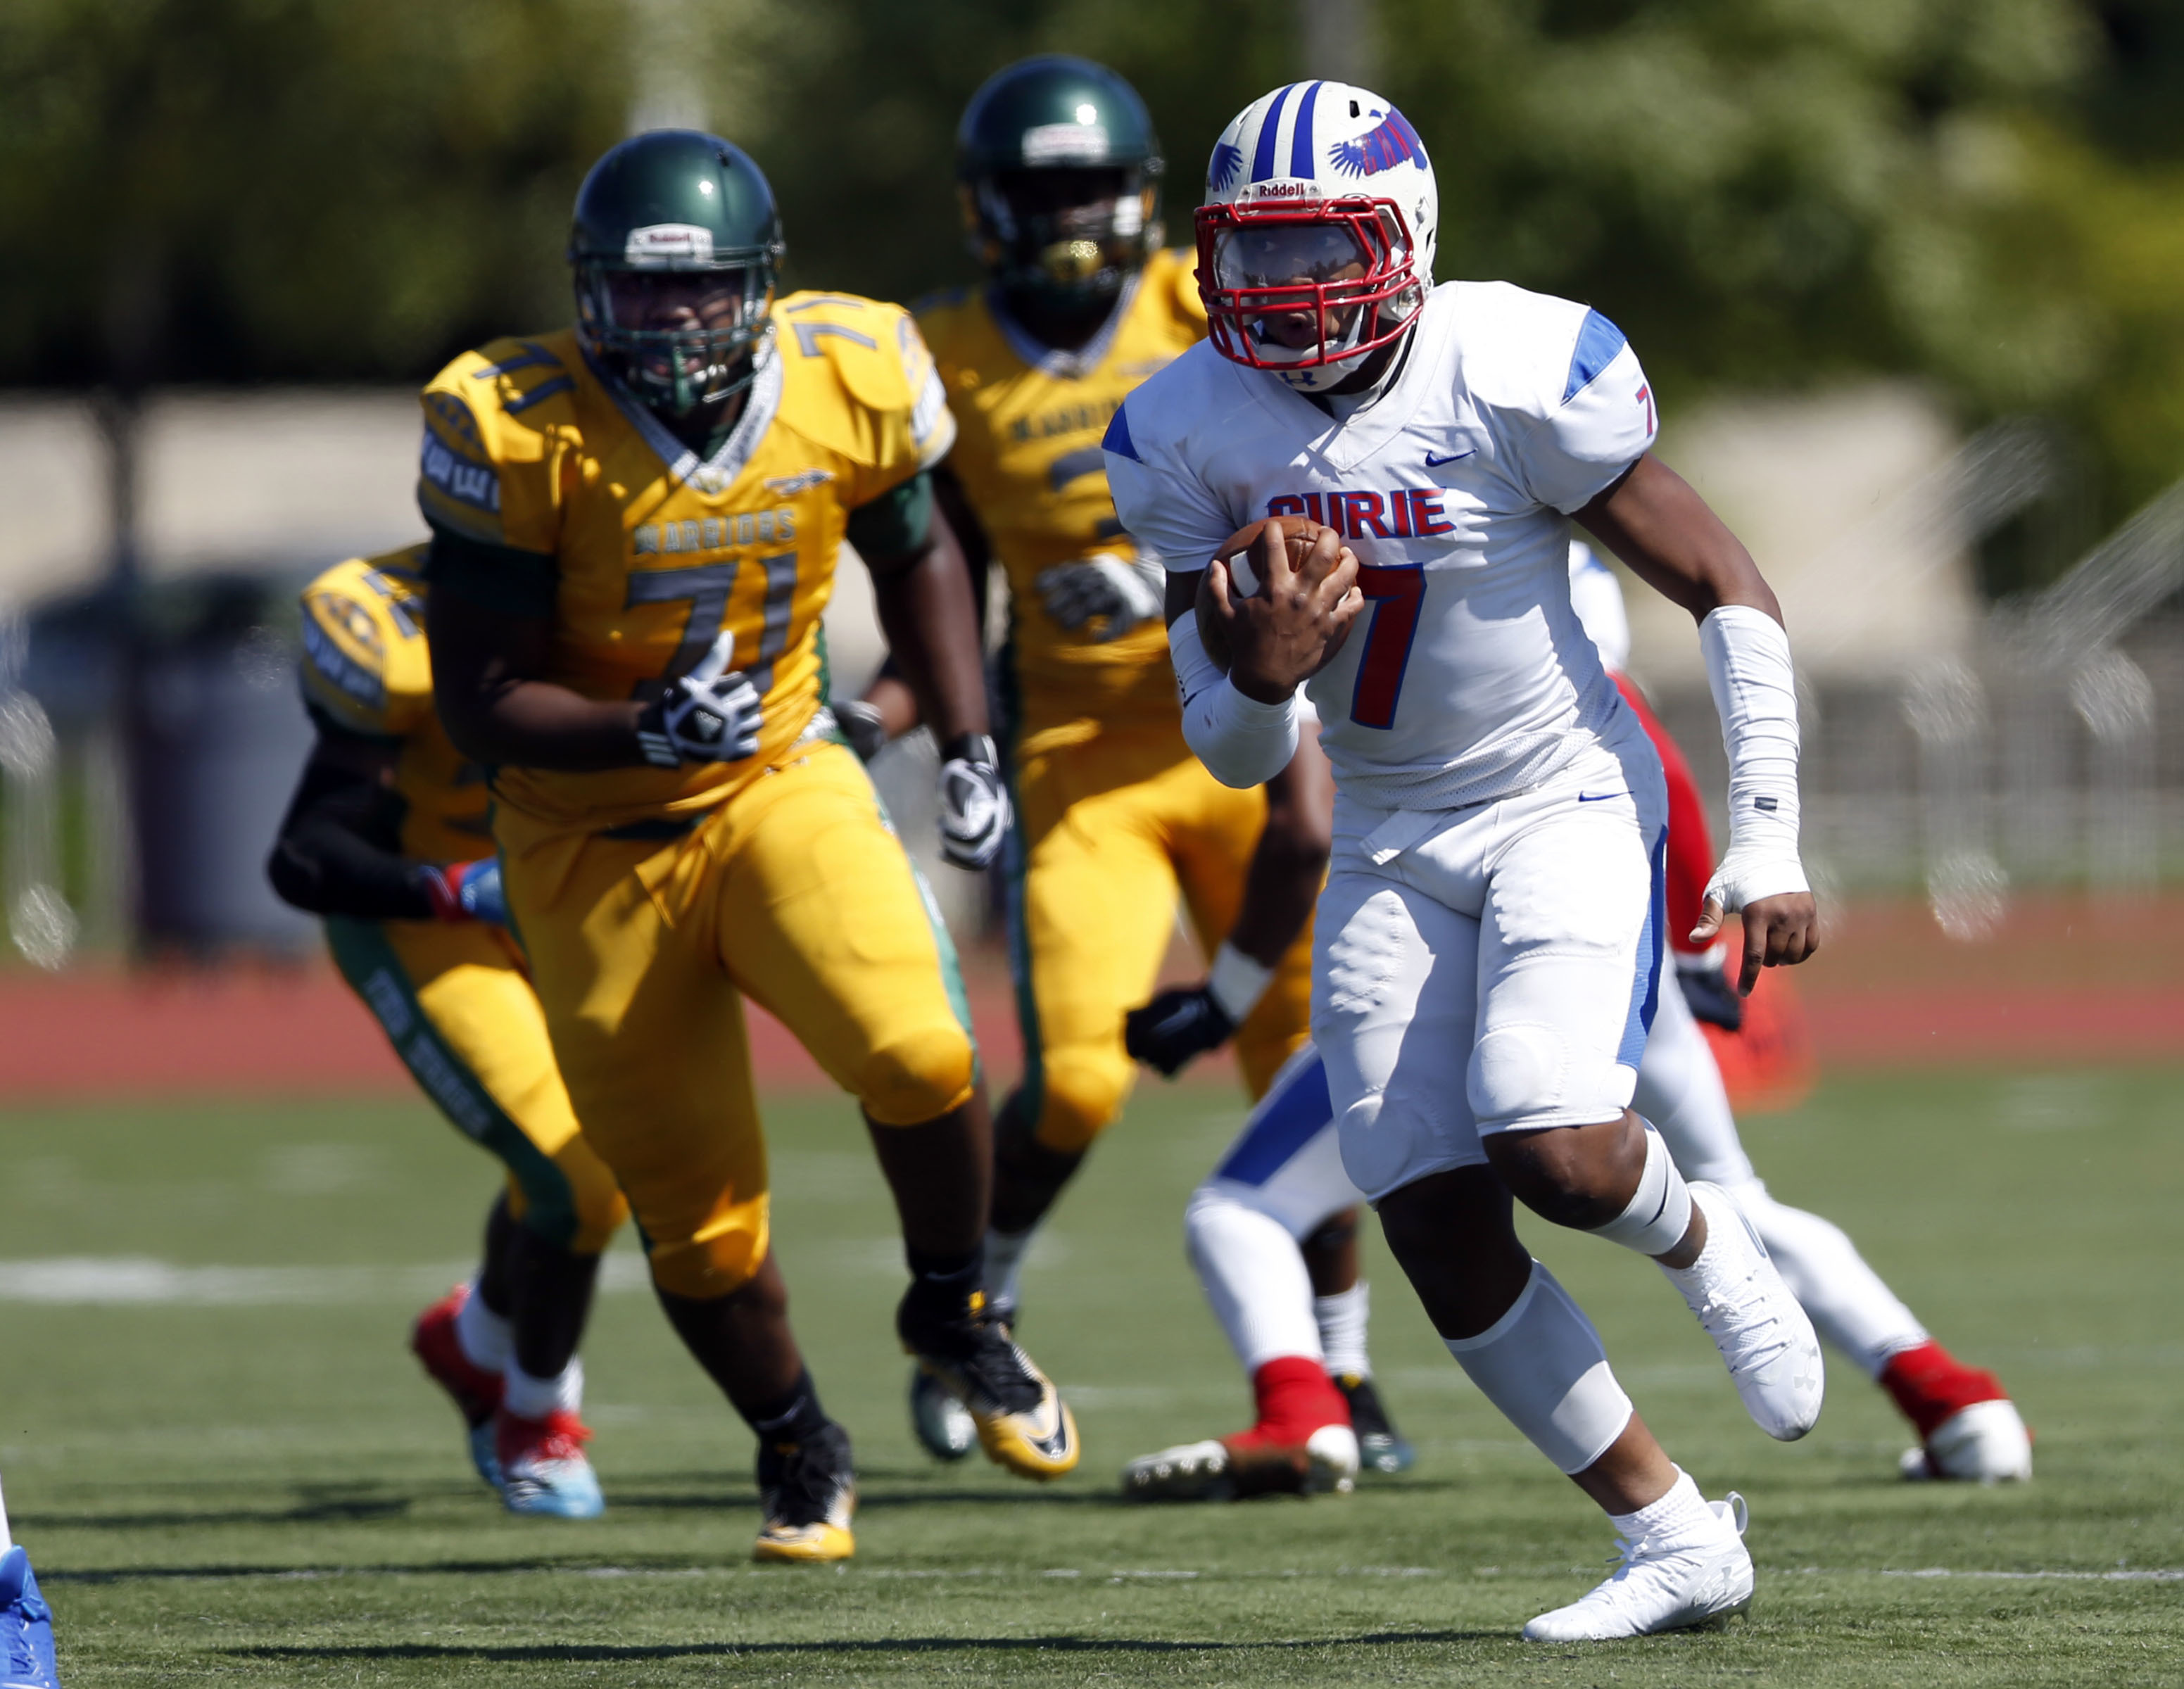 Curie's Damarius Johns (7) finds running room against Westinghouse.